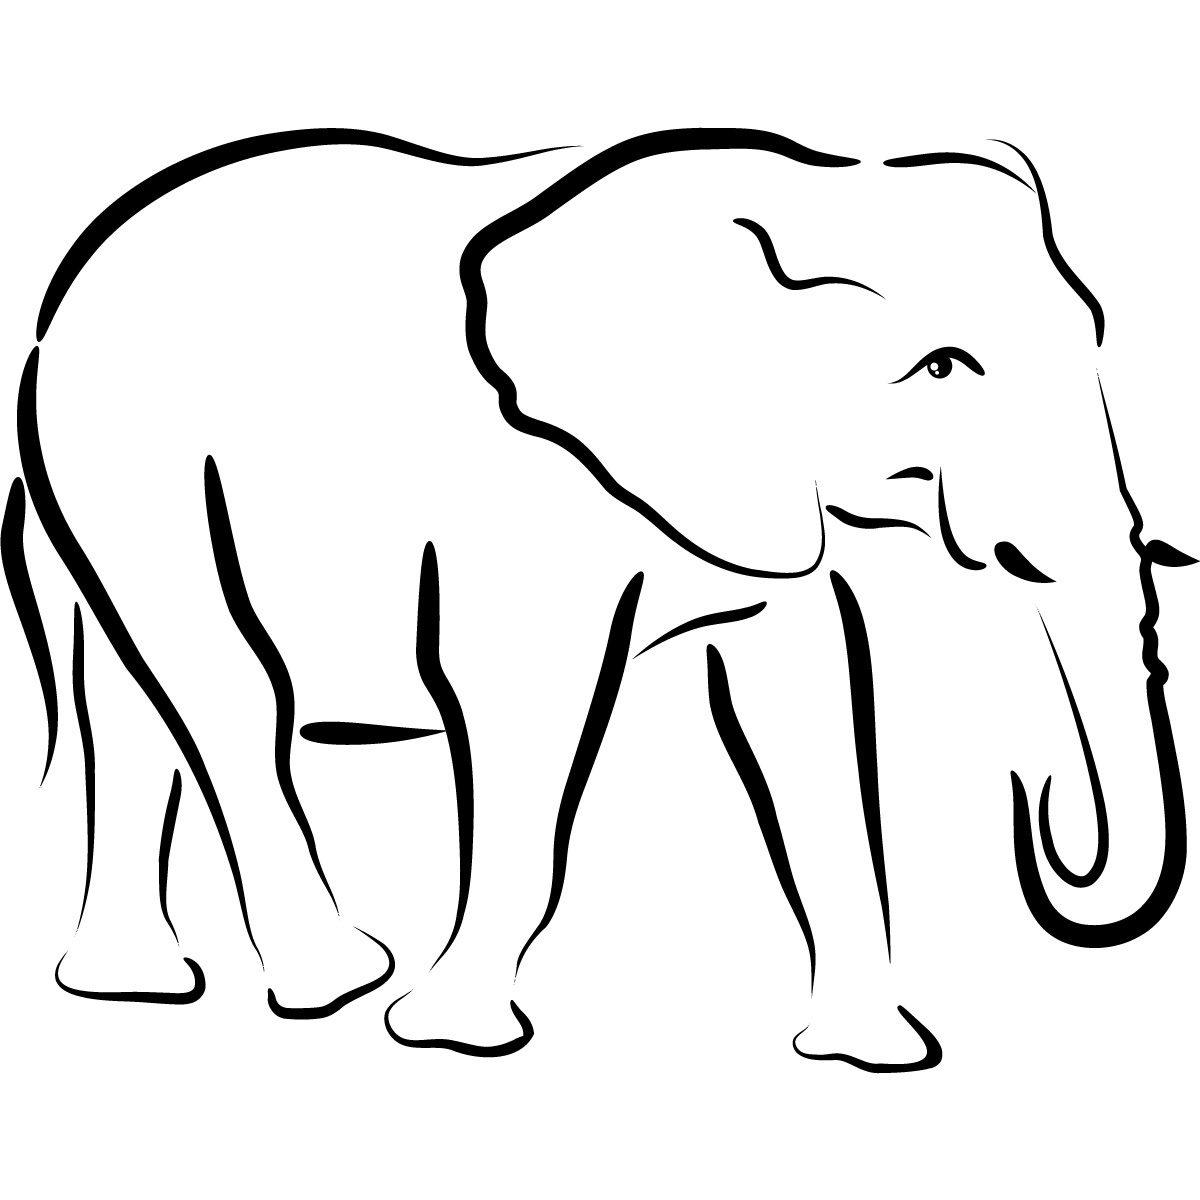 Free Animal Outline, Download Free Clip Art, Free Clip Art On - Free Printable Arty Animal Outlines